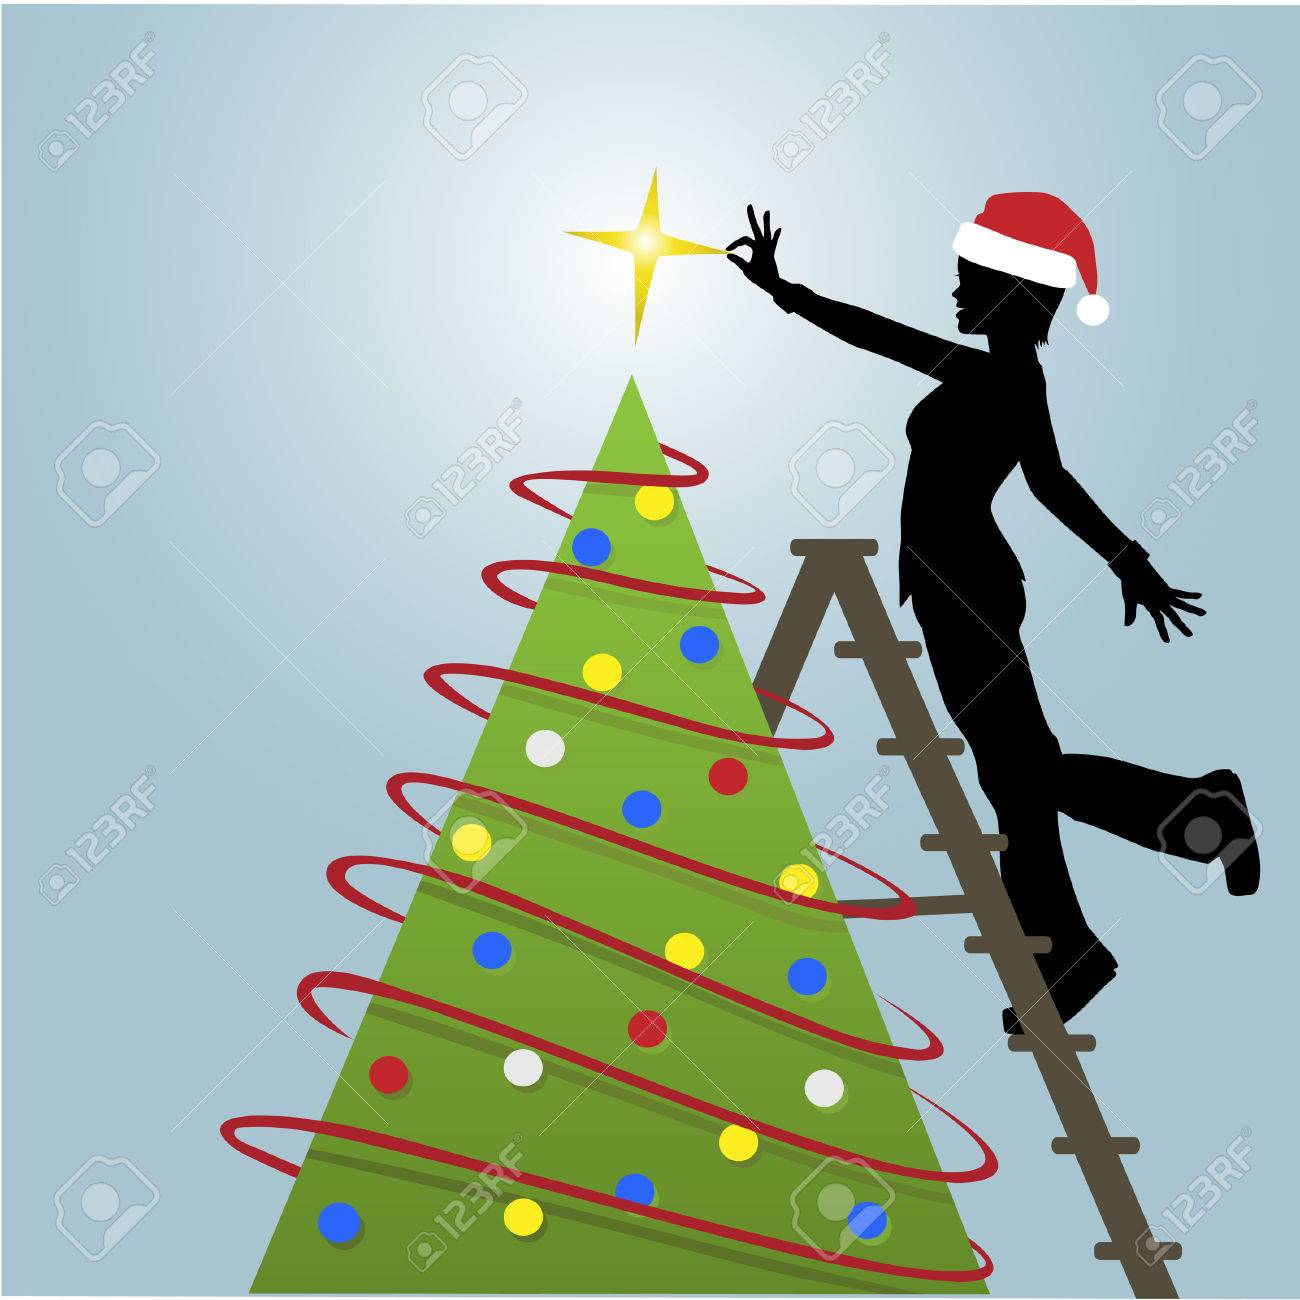 Silhouette woman decorates a Christmas Tree with a star and other decorations. Stock Vector - 5783218